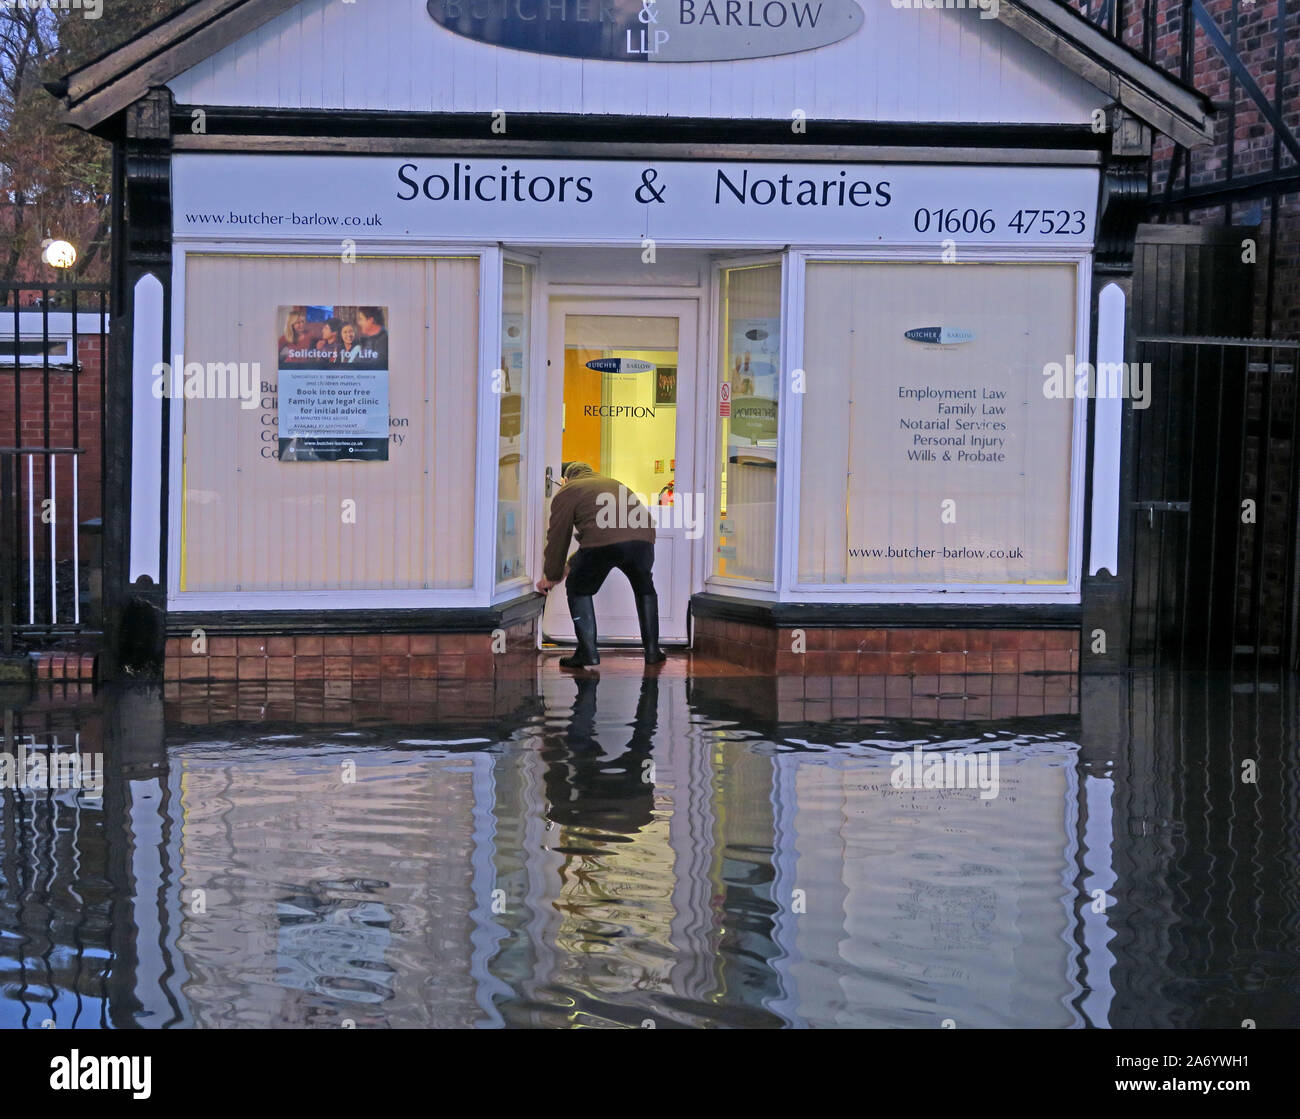 Severe flooding in Northwich Town, Chester way, River Weaver October 2019, Cheshire, England, UK - sand bags at Butcher Barlow Solicitors Notaries Stock Photo